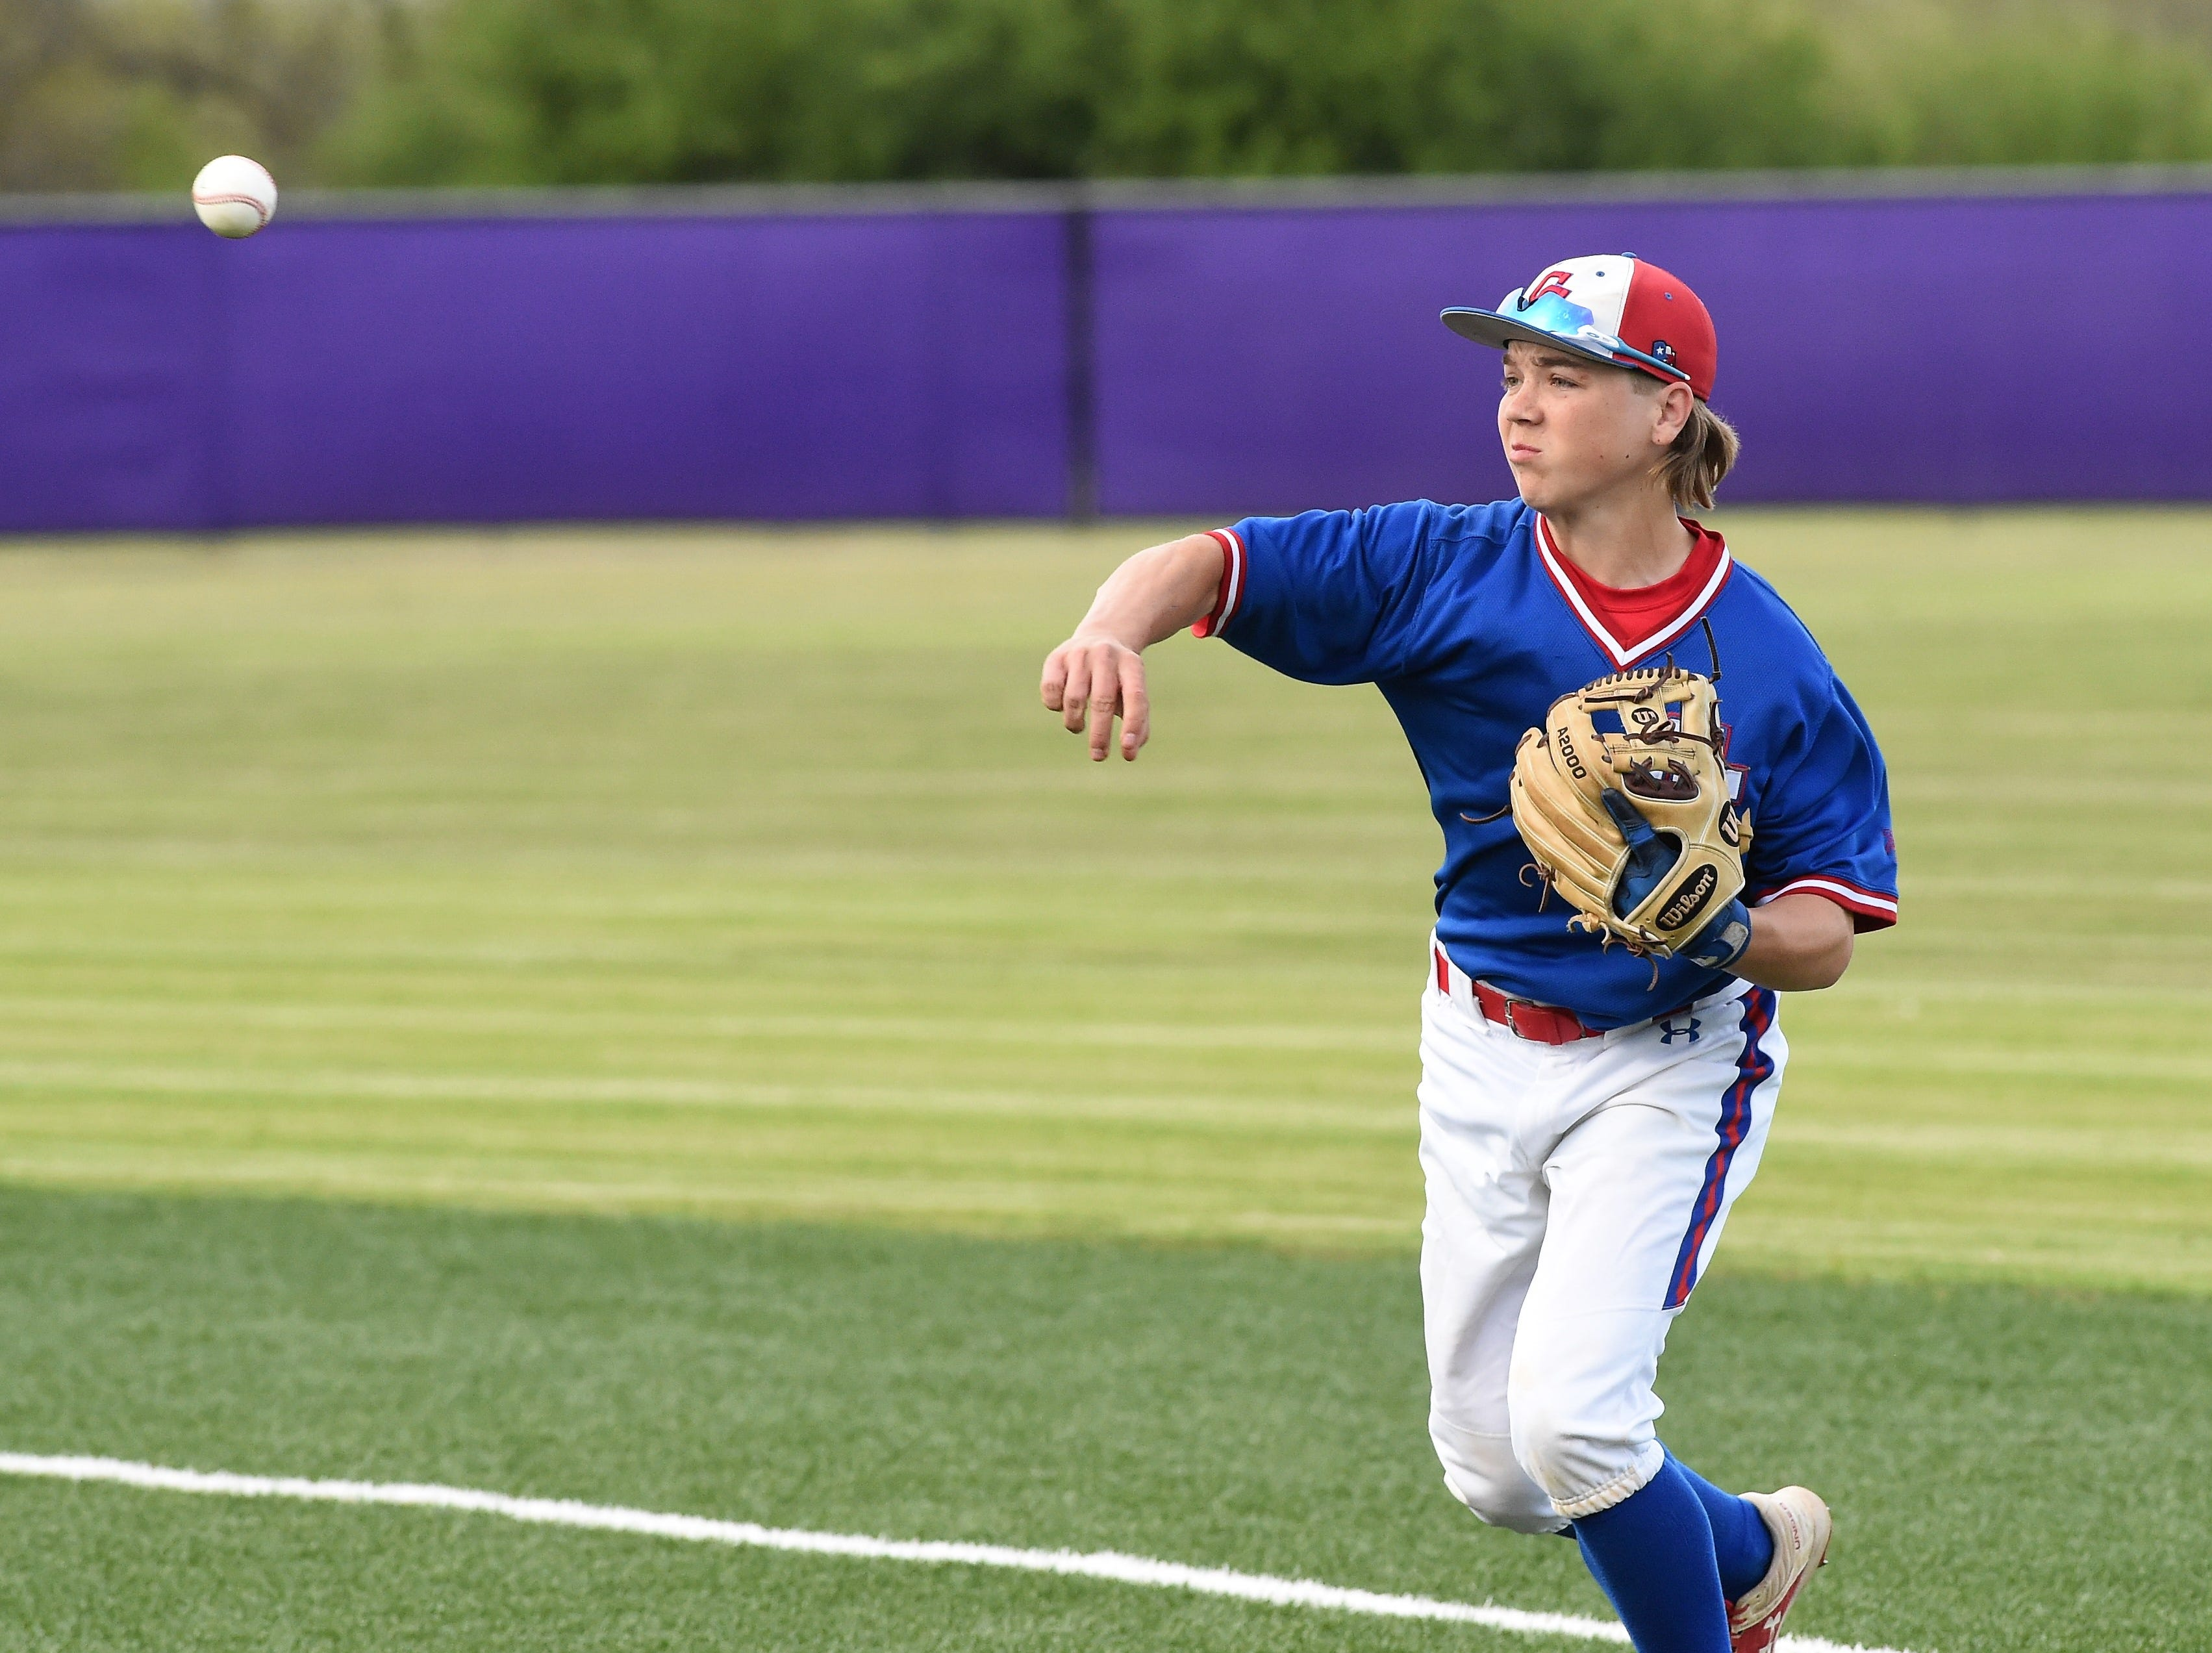 Cooper second baseman Brody Stanford (4) throws to first for an out against Wylie at Bulldog Field on Friday, April 12, 2019. Stanford walked and scored in the Cougars 4-3 loss.